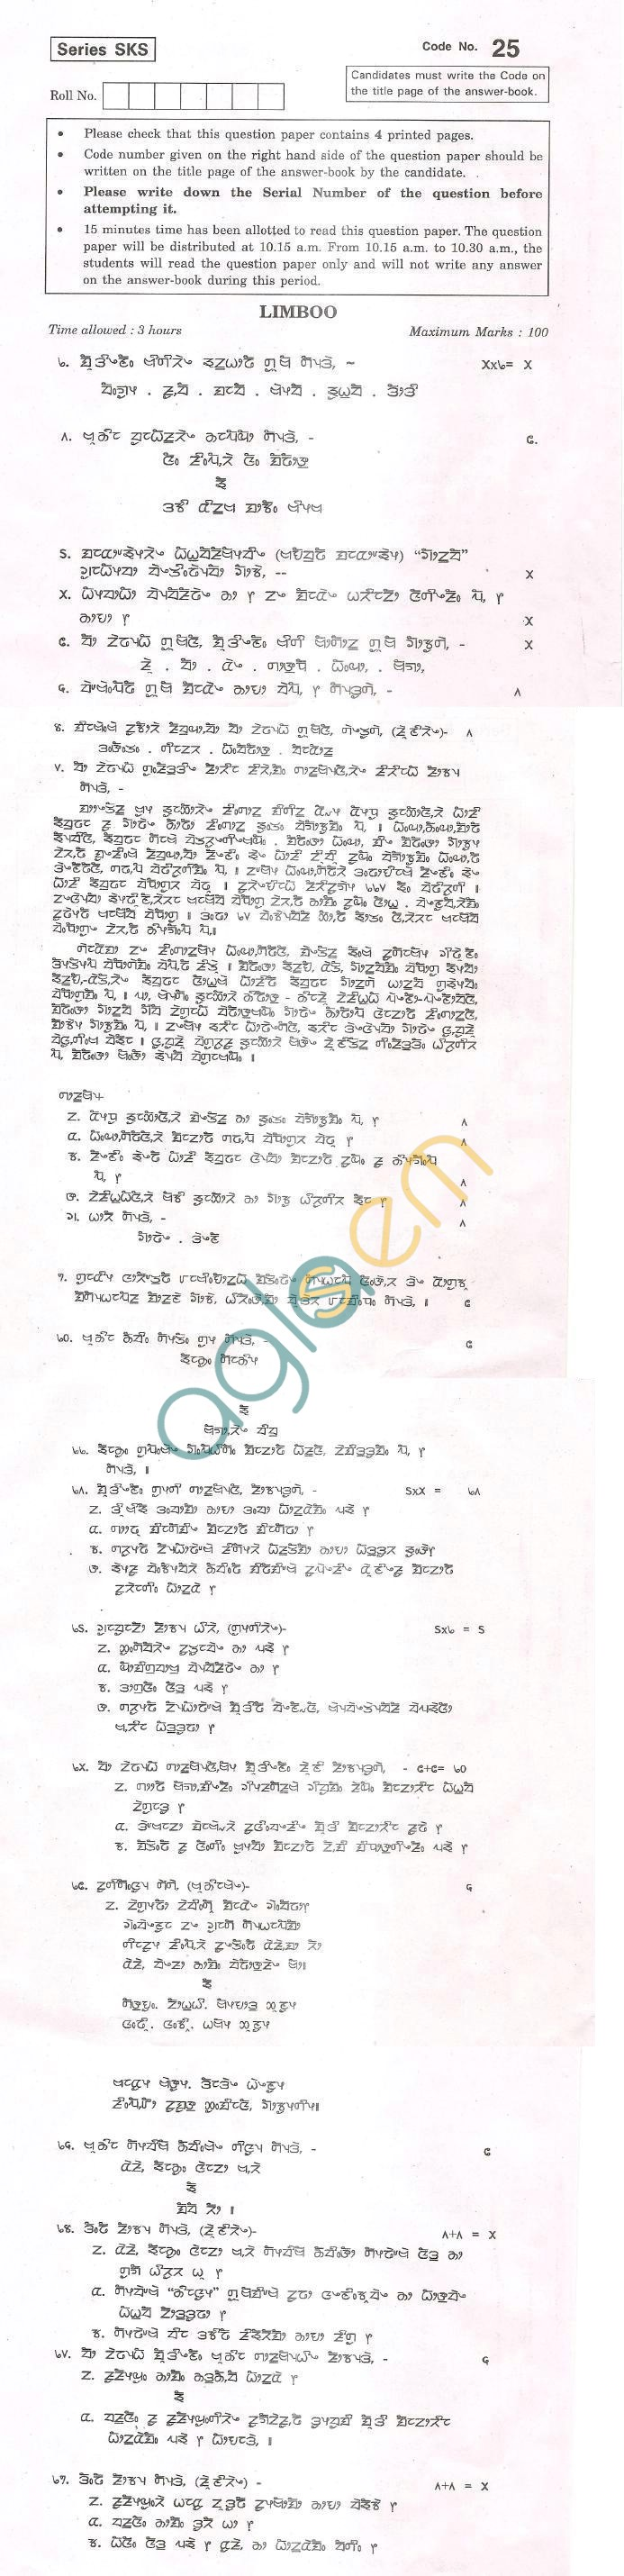 CBSE Board Exam 2013 Class XII Question Paper - Limboo